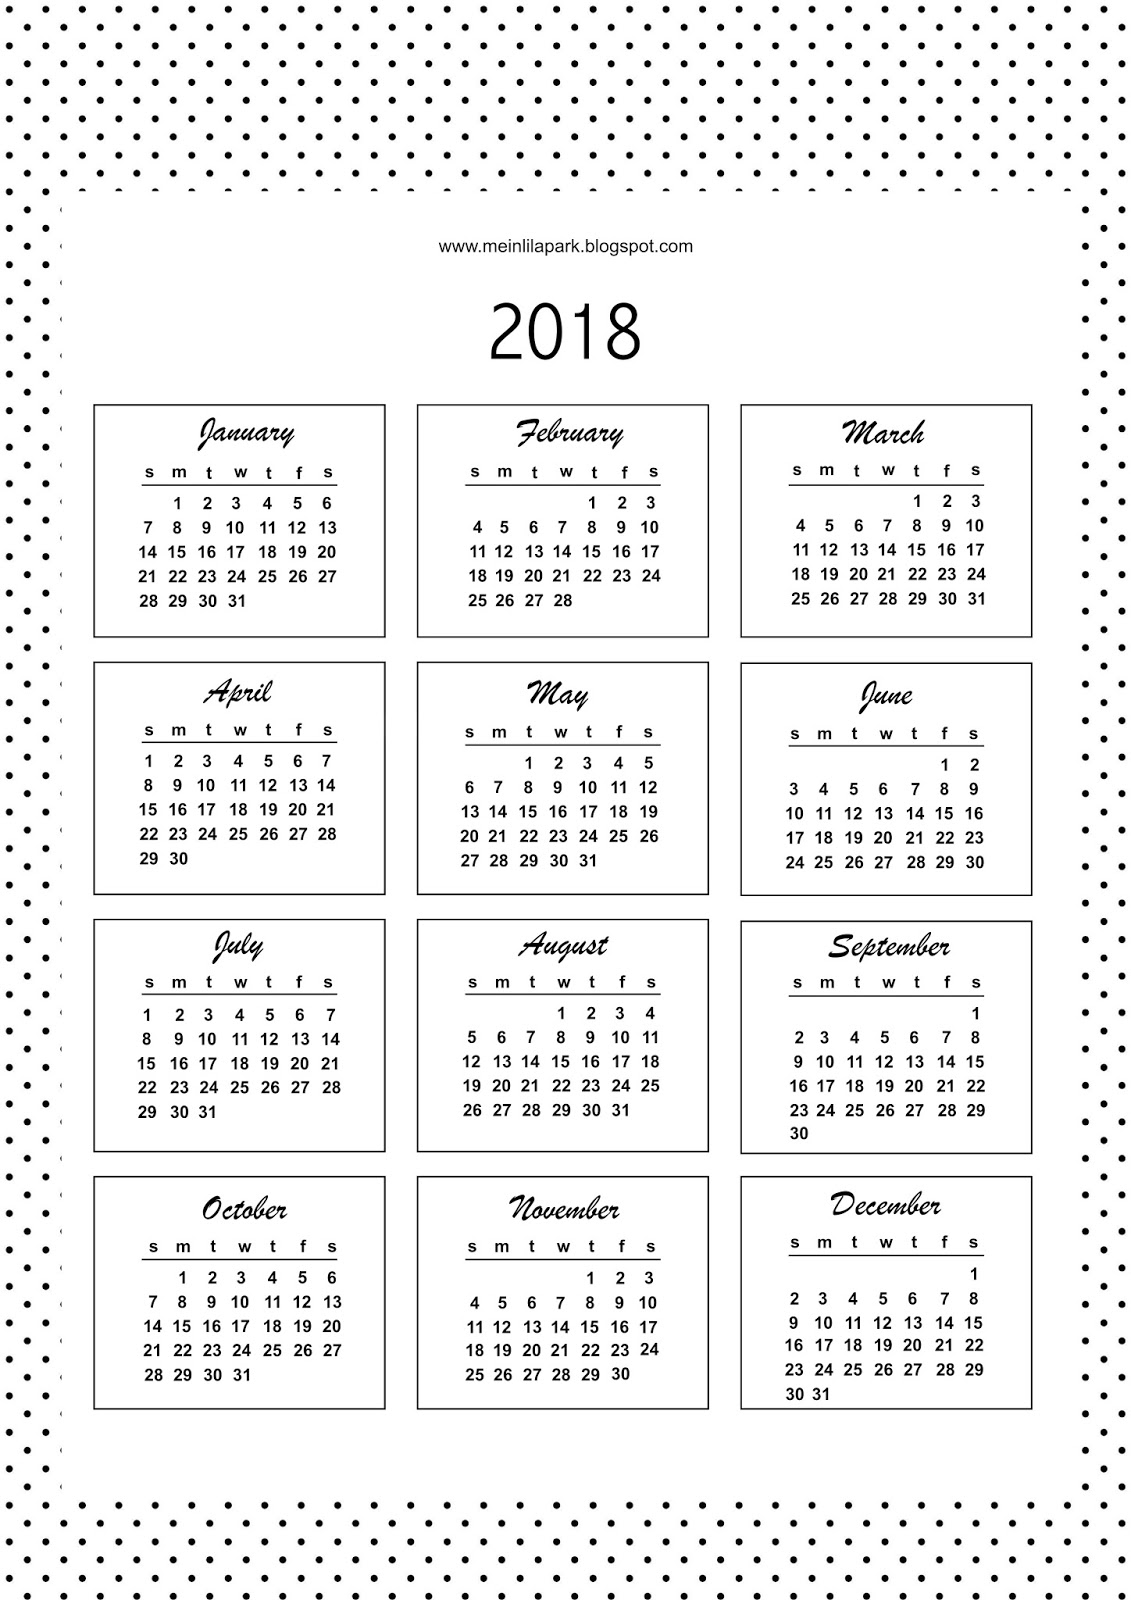 Calendar Bullet Journal 2018 : Free printable bullet journal templates calendar